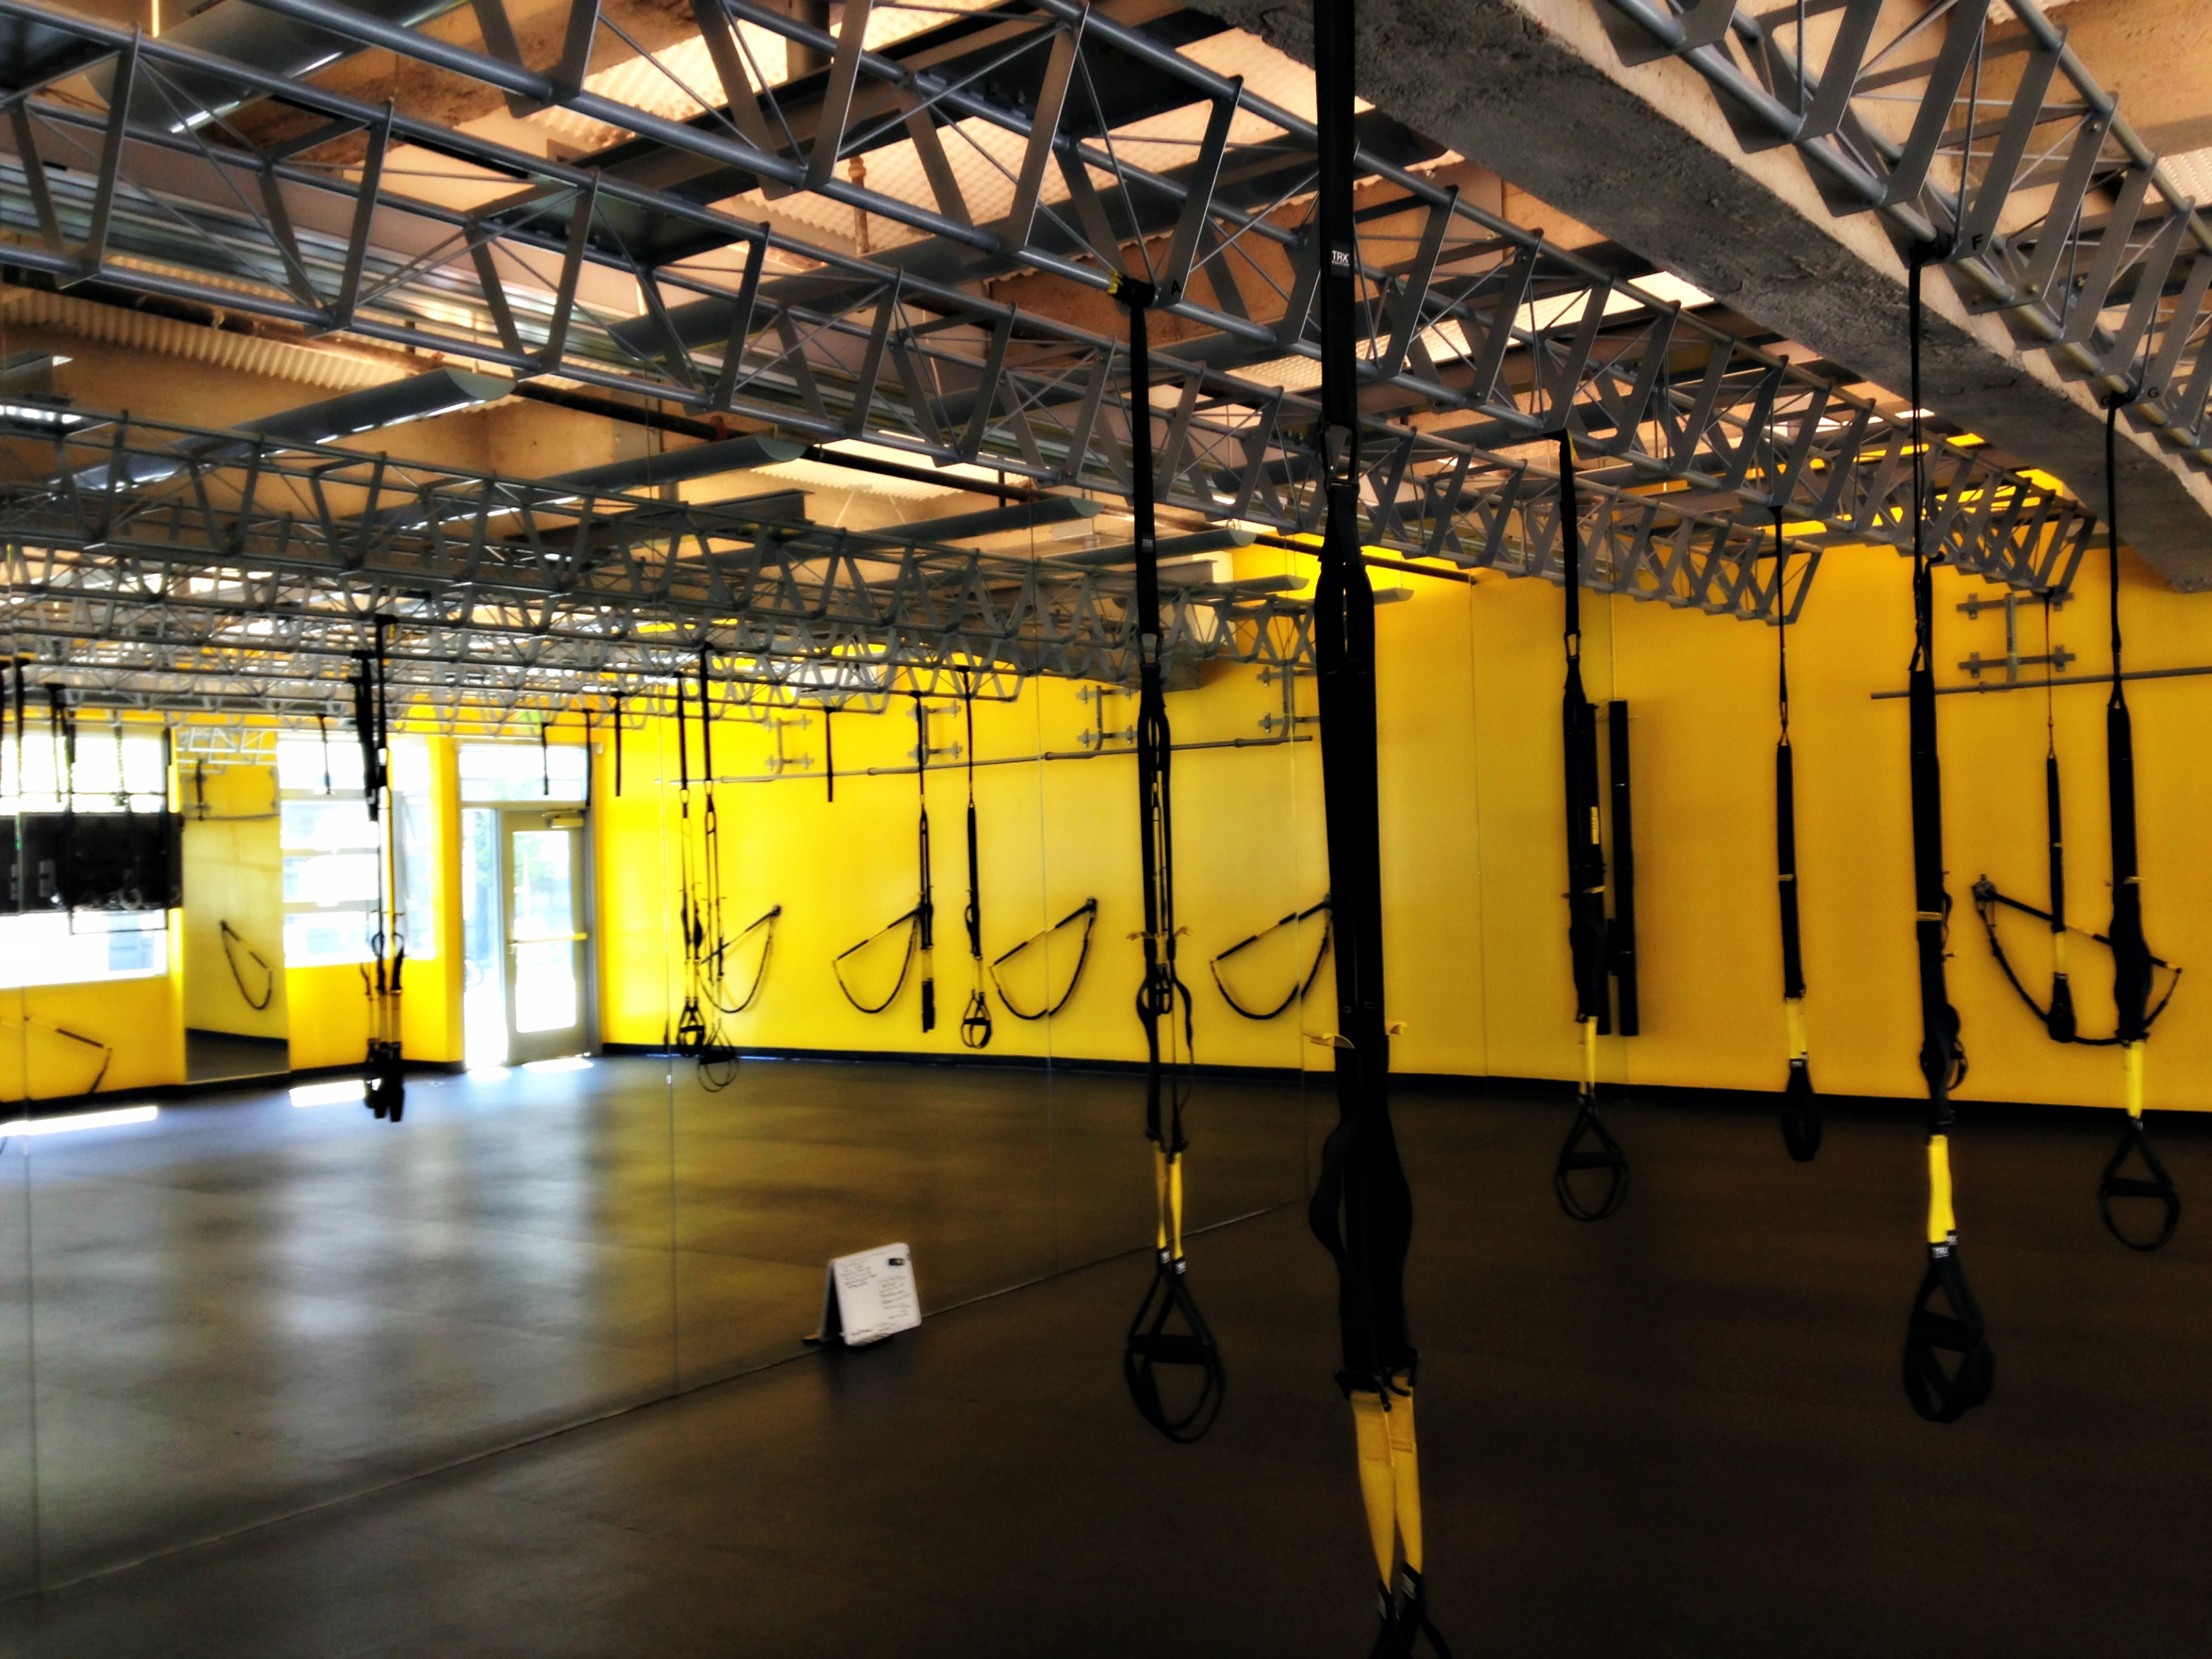 TRX training studio